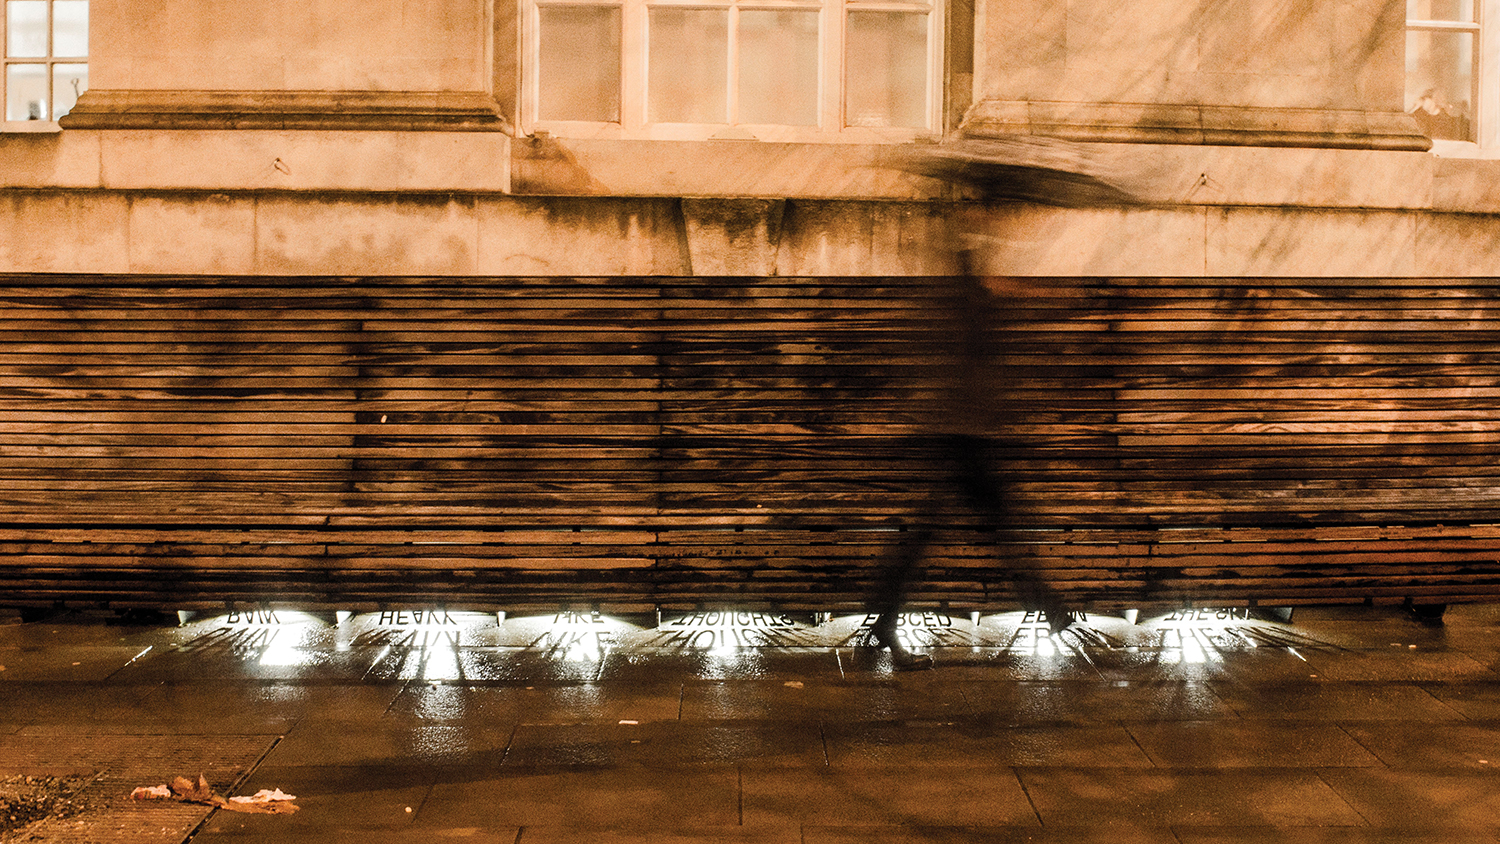 illuminated works project from benches in The Stories Under Our Feet